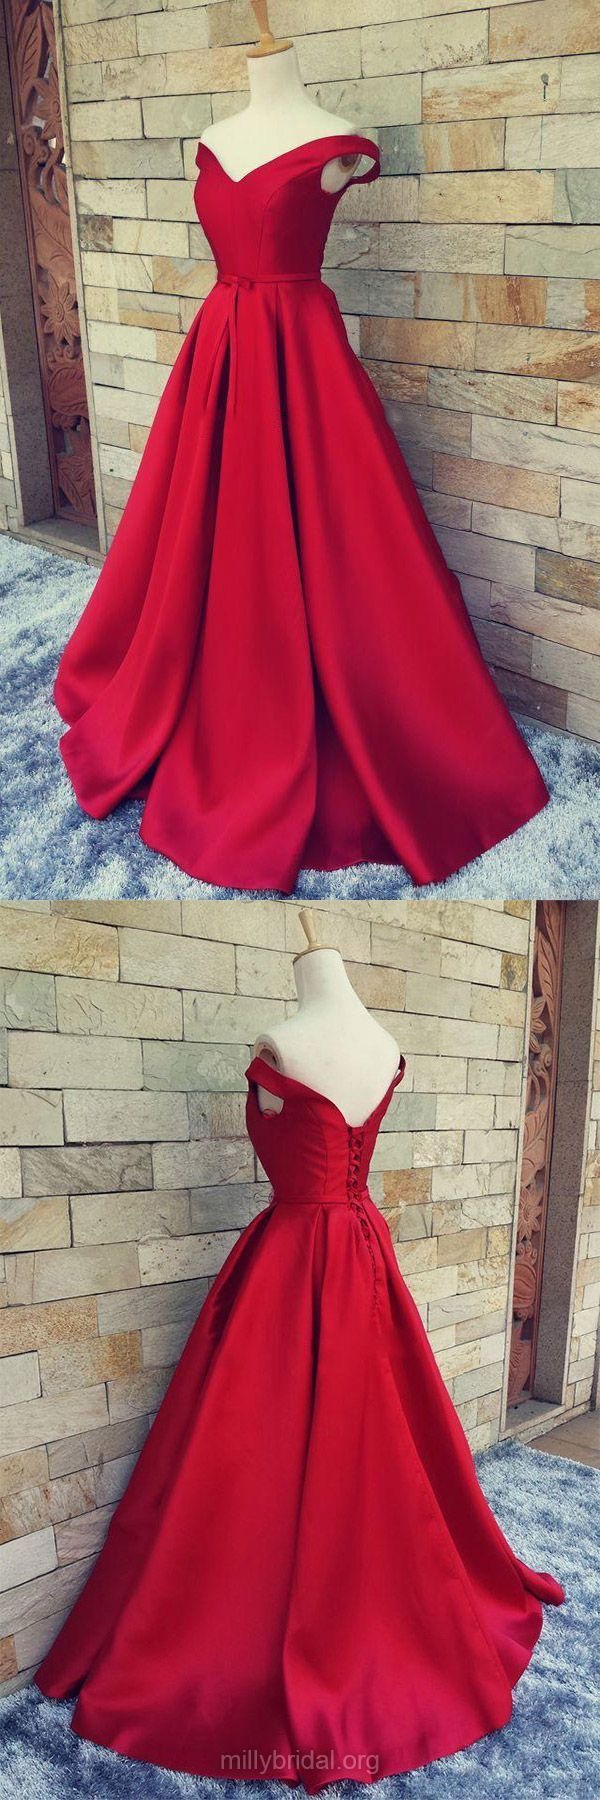 Gorgeous Red Prom Dresses,Off-the-shoulder Formal Dresses,Cheap Sexy  Evening Gowns, Girls Party Dress